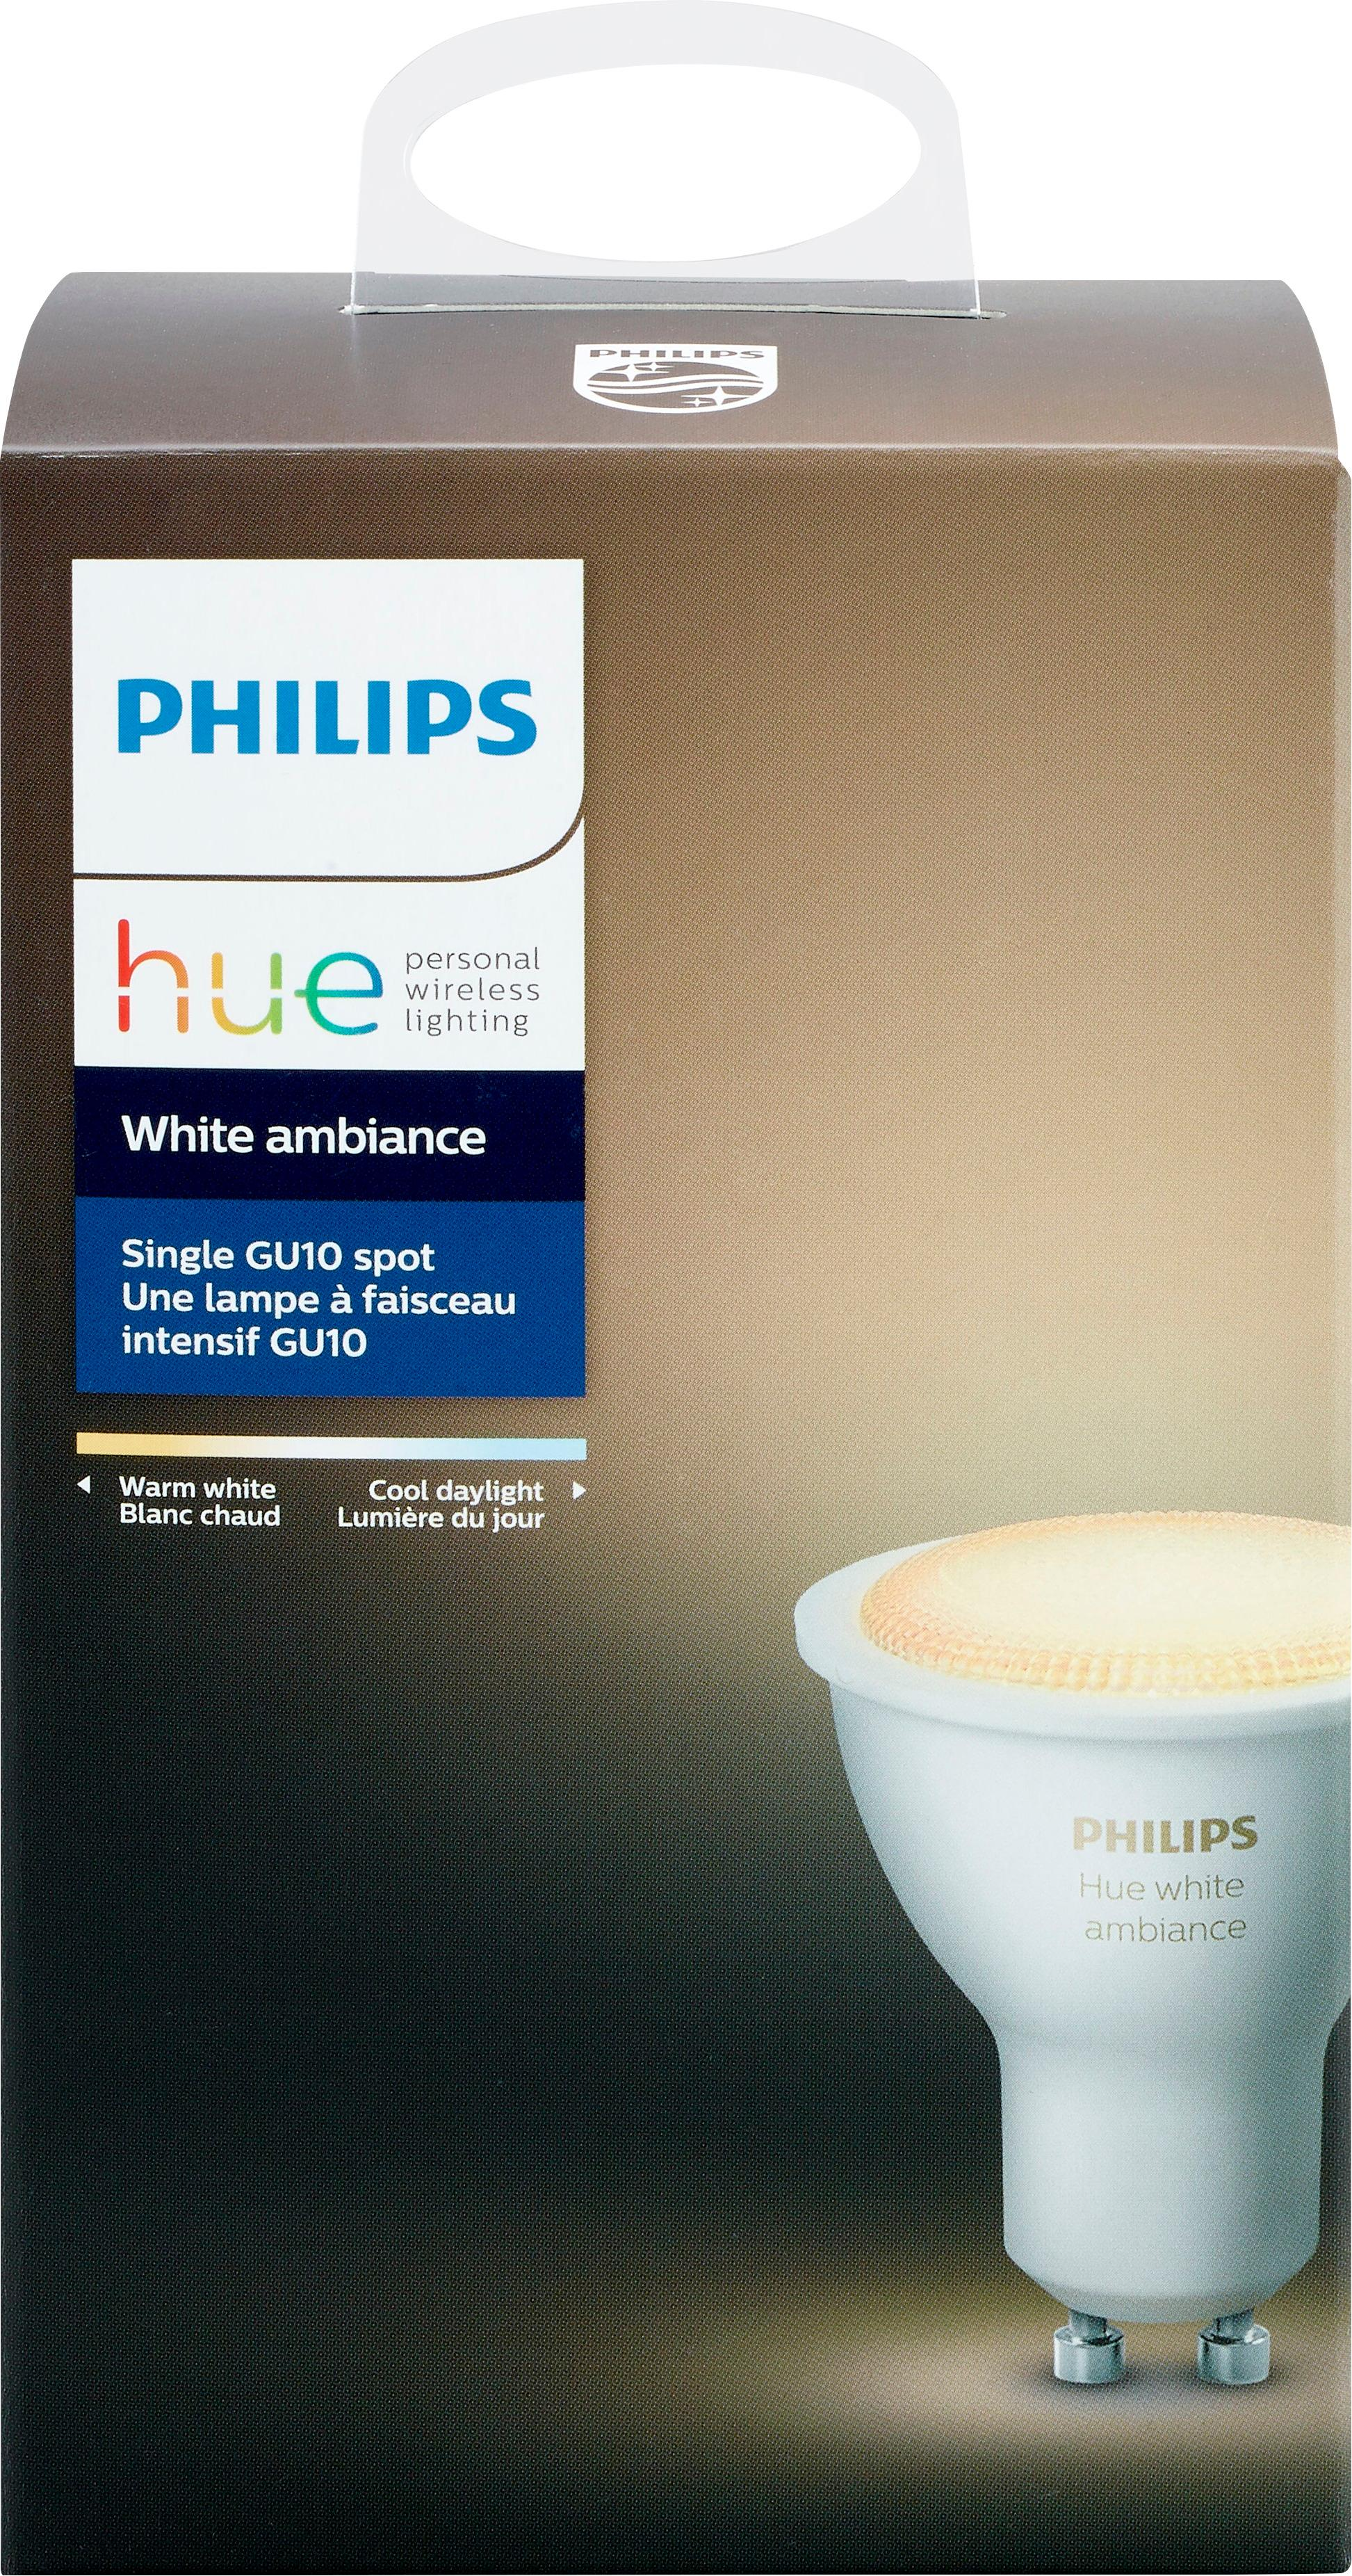 Hue G10 Philips Hue White Ambiance Gu10 Wi Fi Smart Led Bulb White